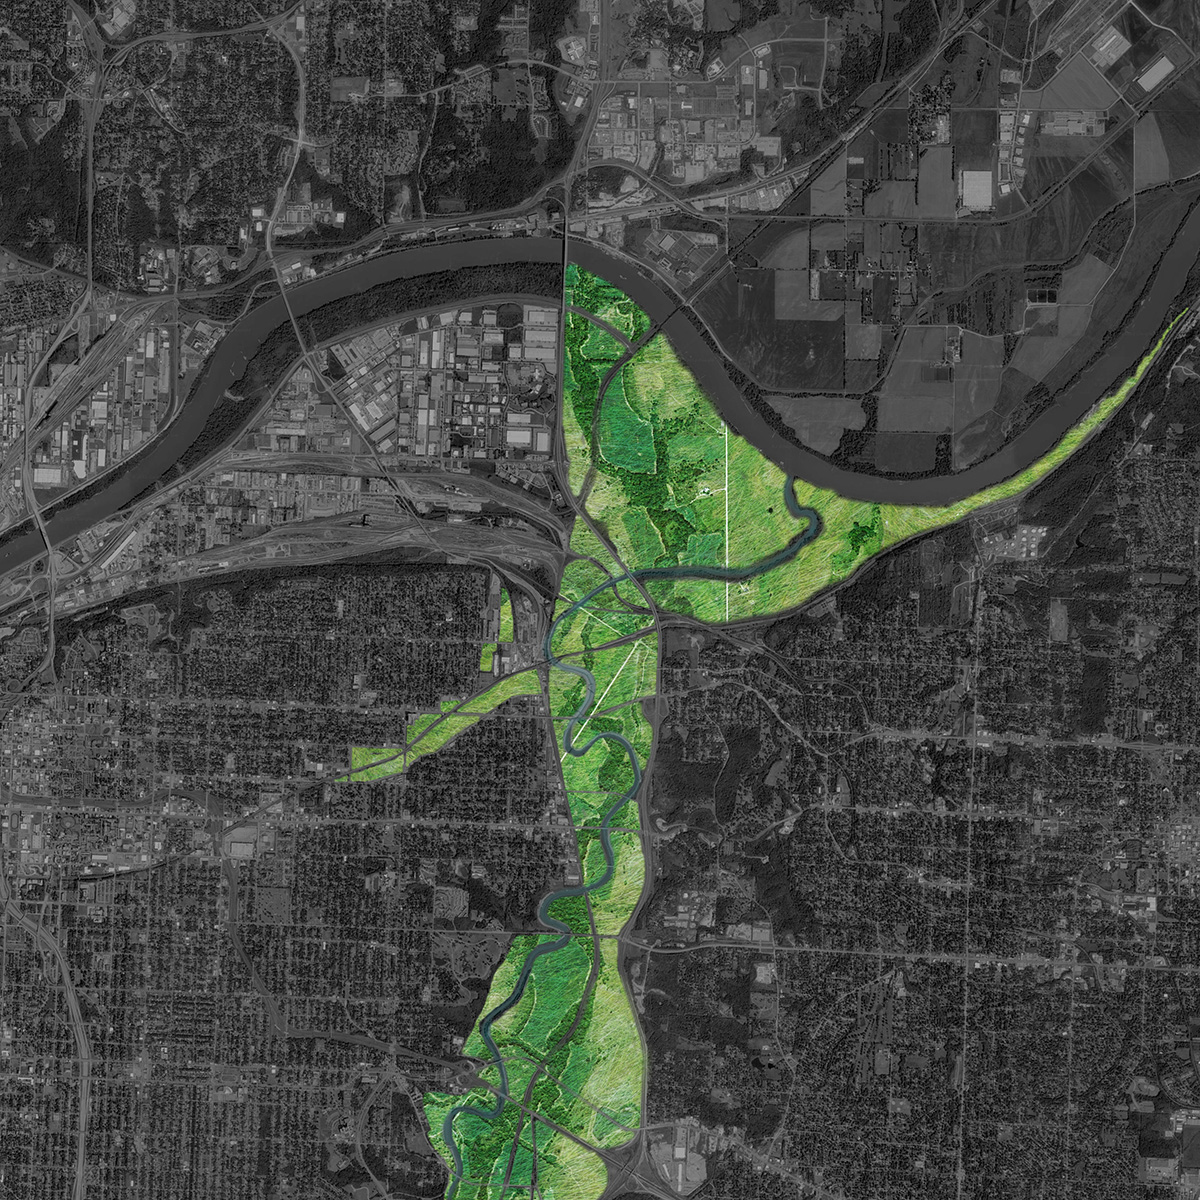 2012-2013 Studio project: Independence avenue vision study